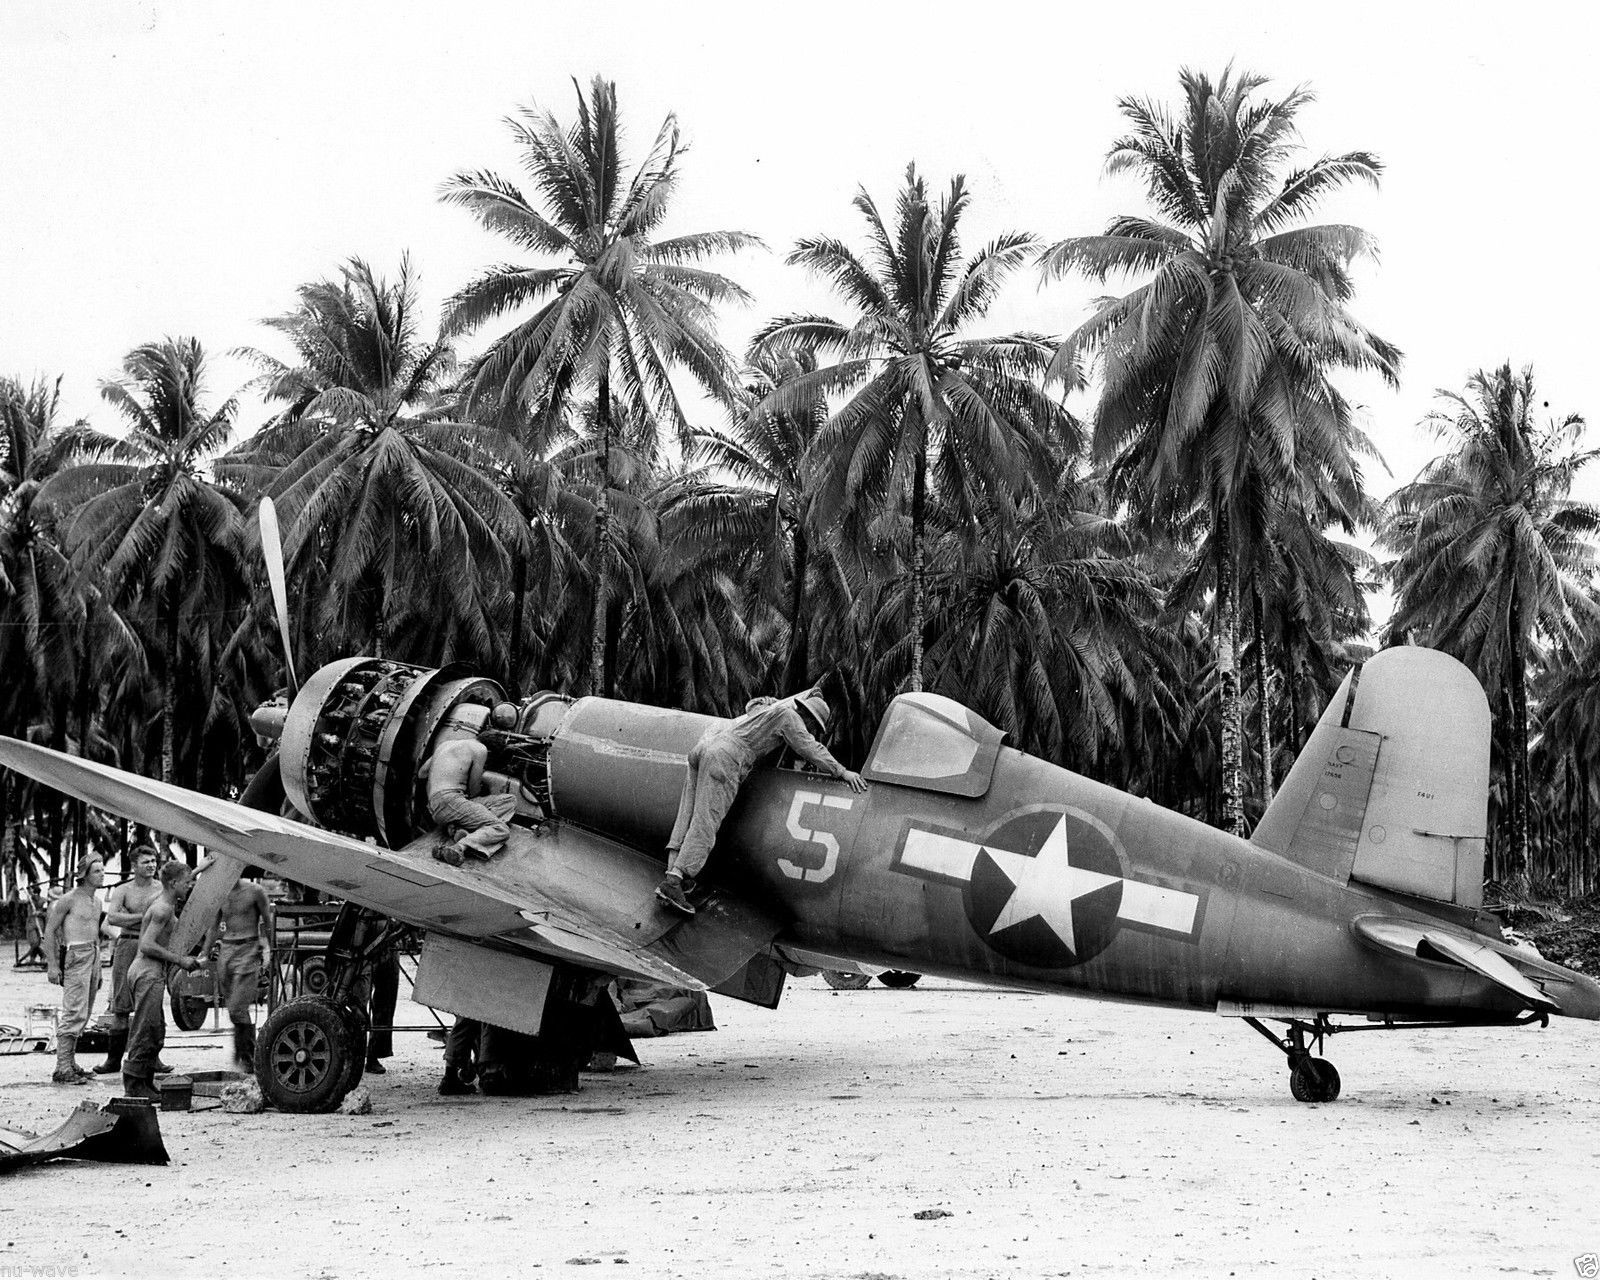 1944-US Navy Vought F4U-1A Corsair Fighting Squadron VF-17 Jolly Rogers-PACIFIC